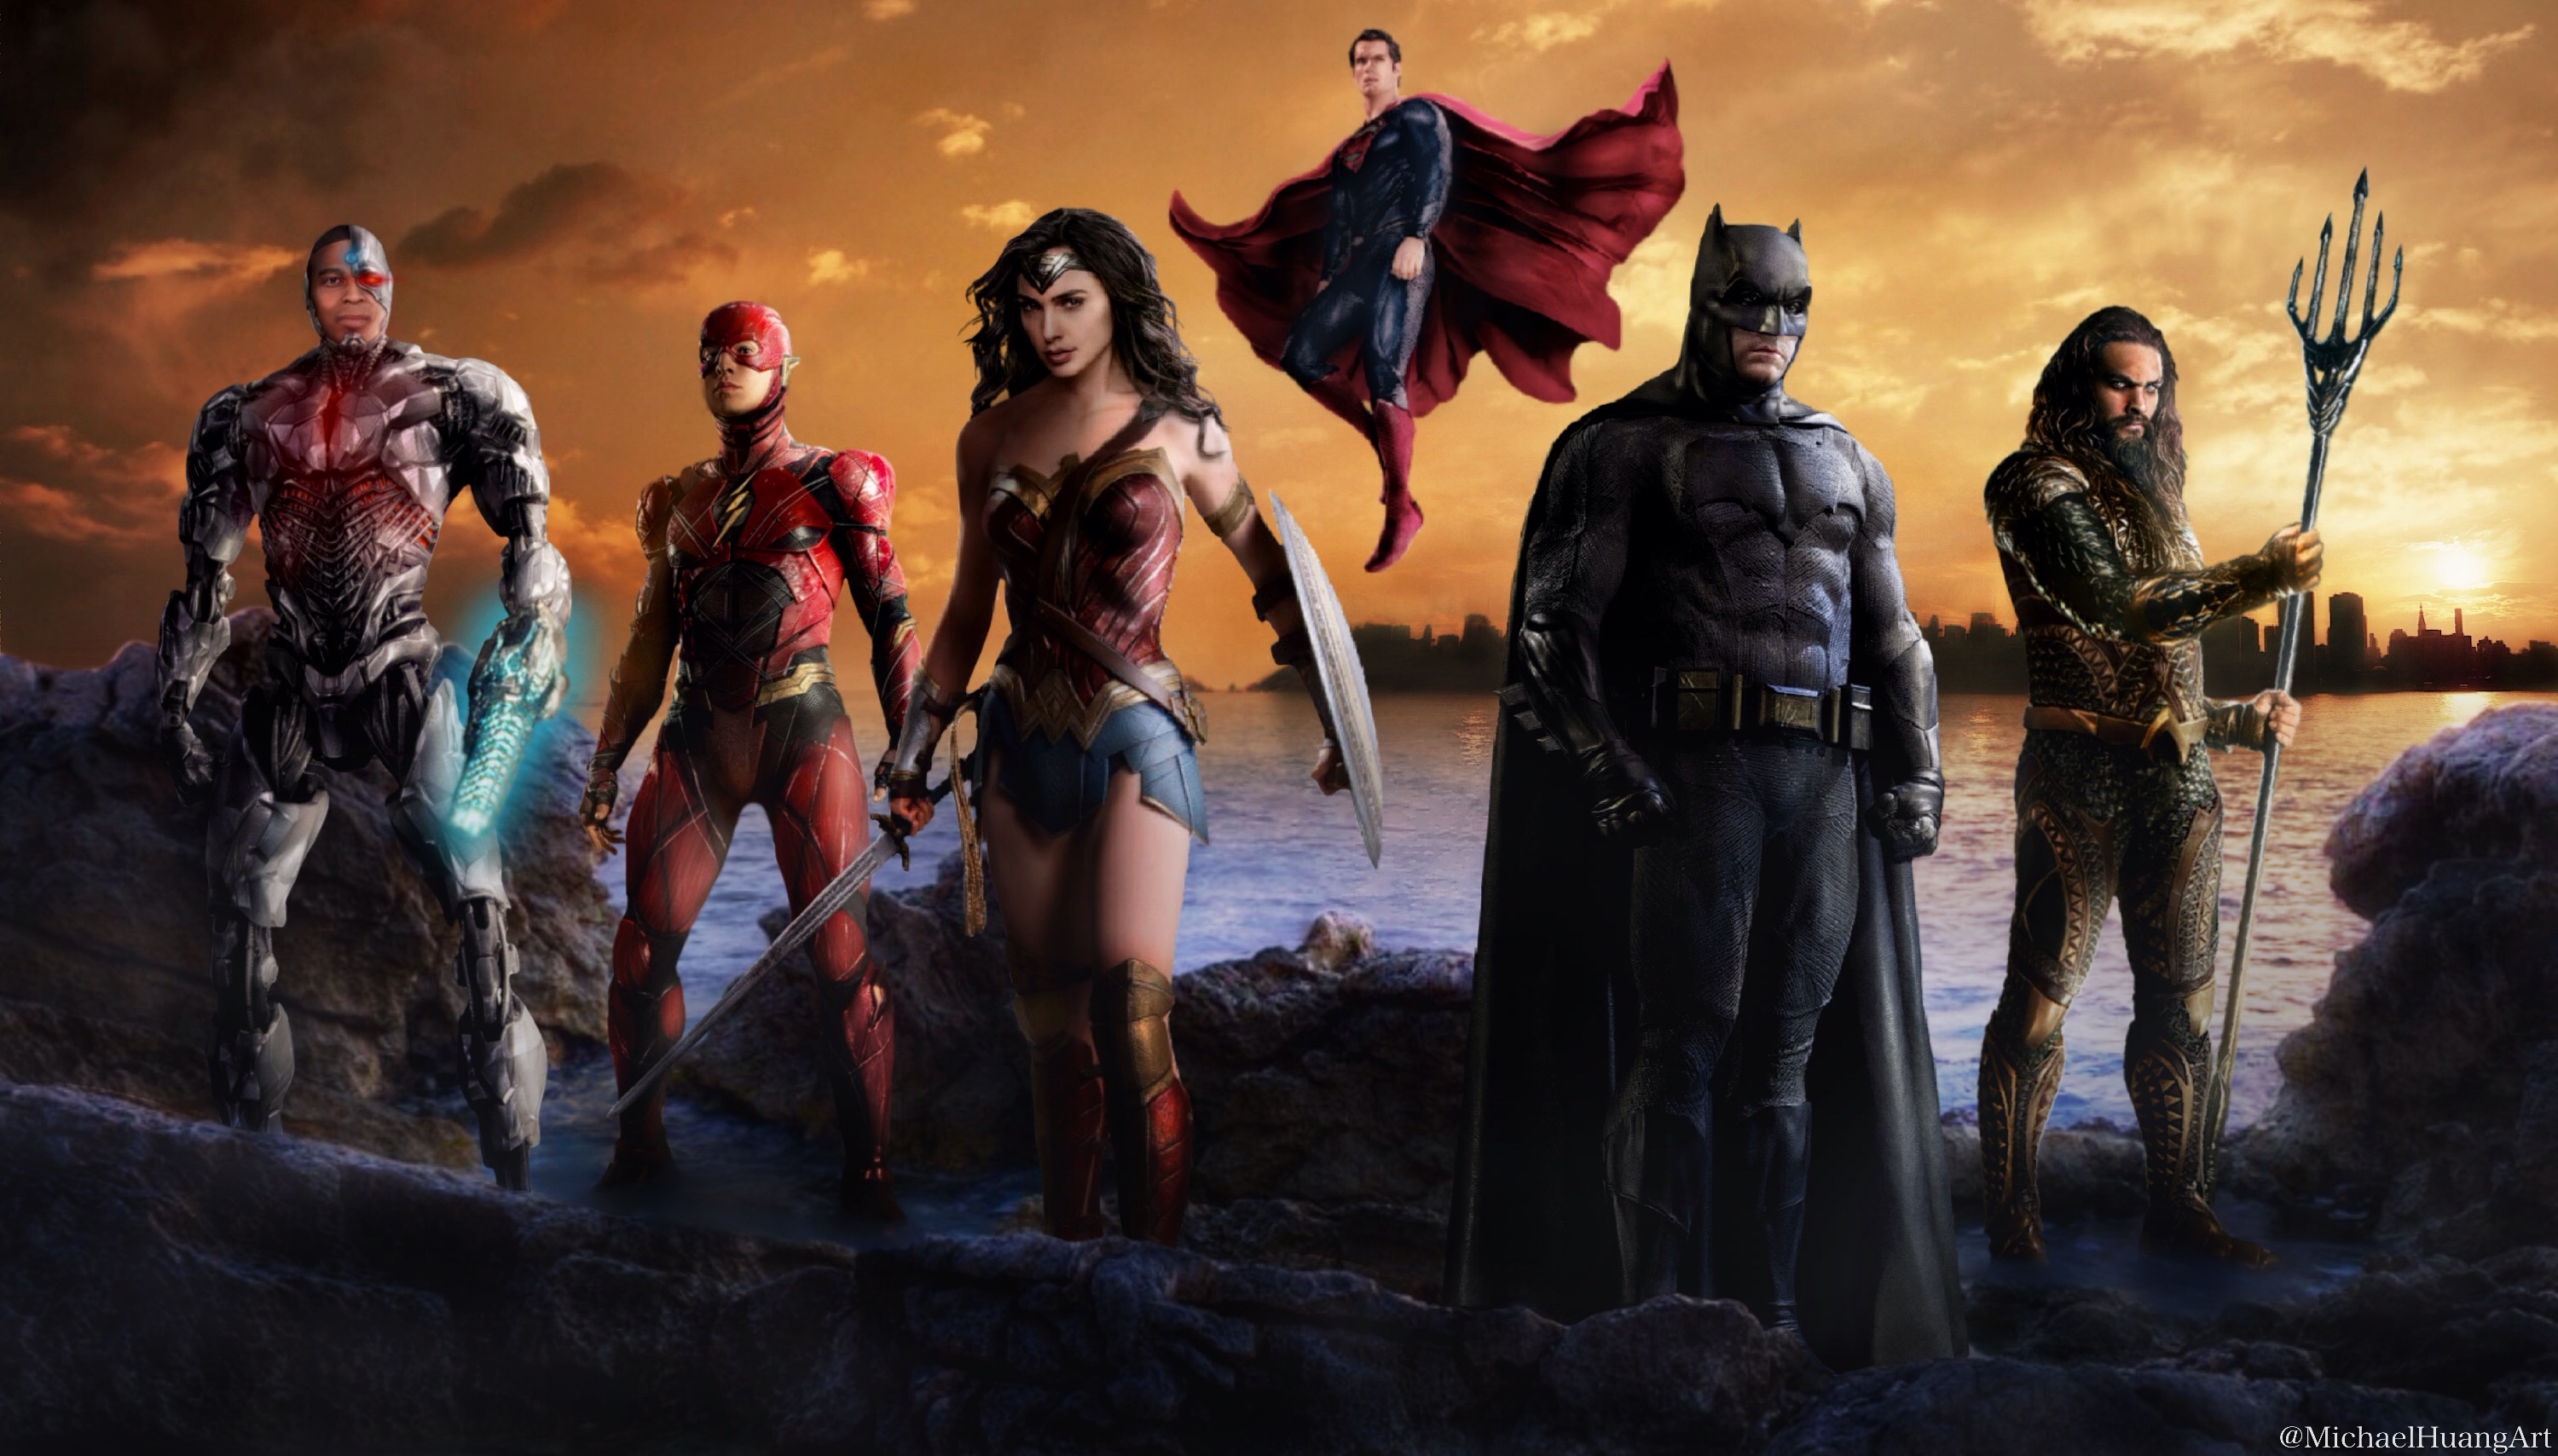 justice league artwork hd, hd movies, 4k wallpapers, images